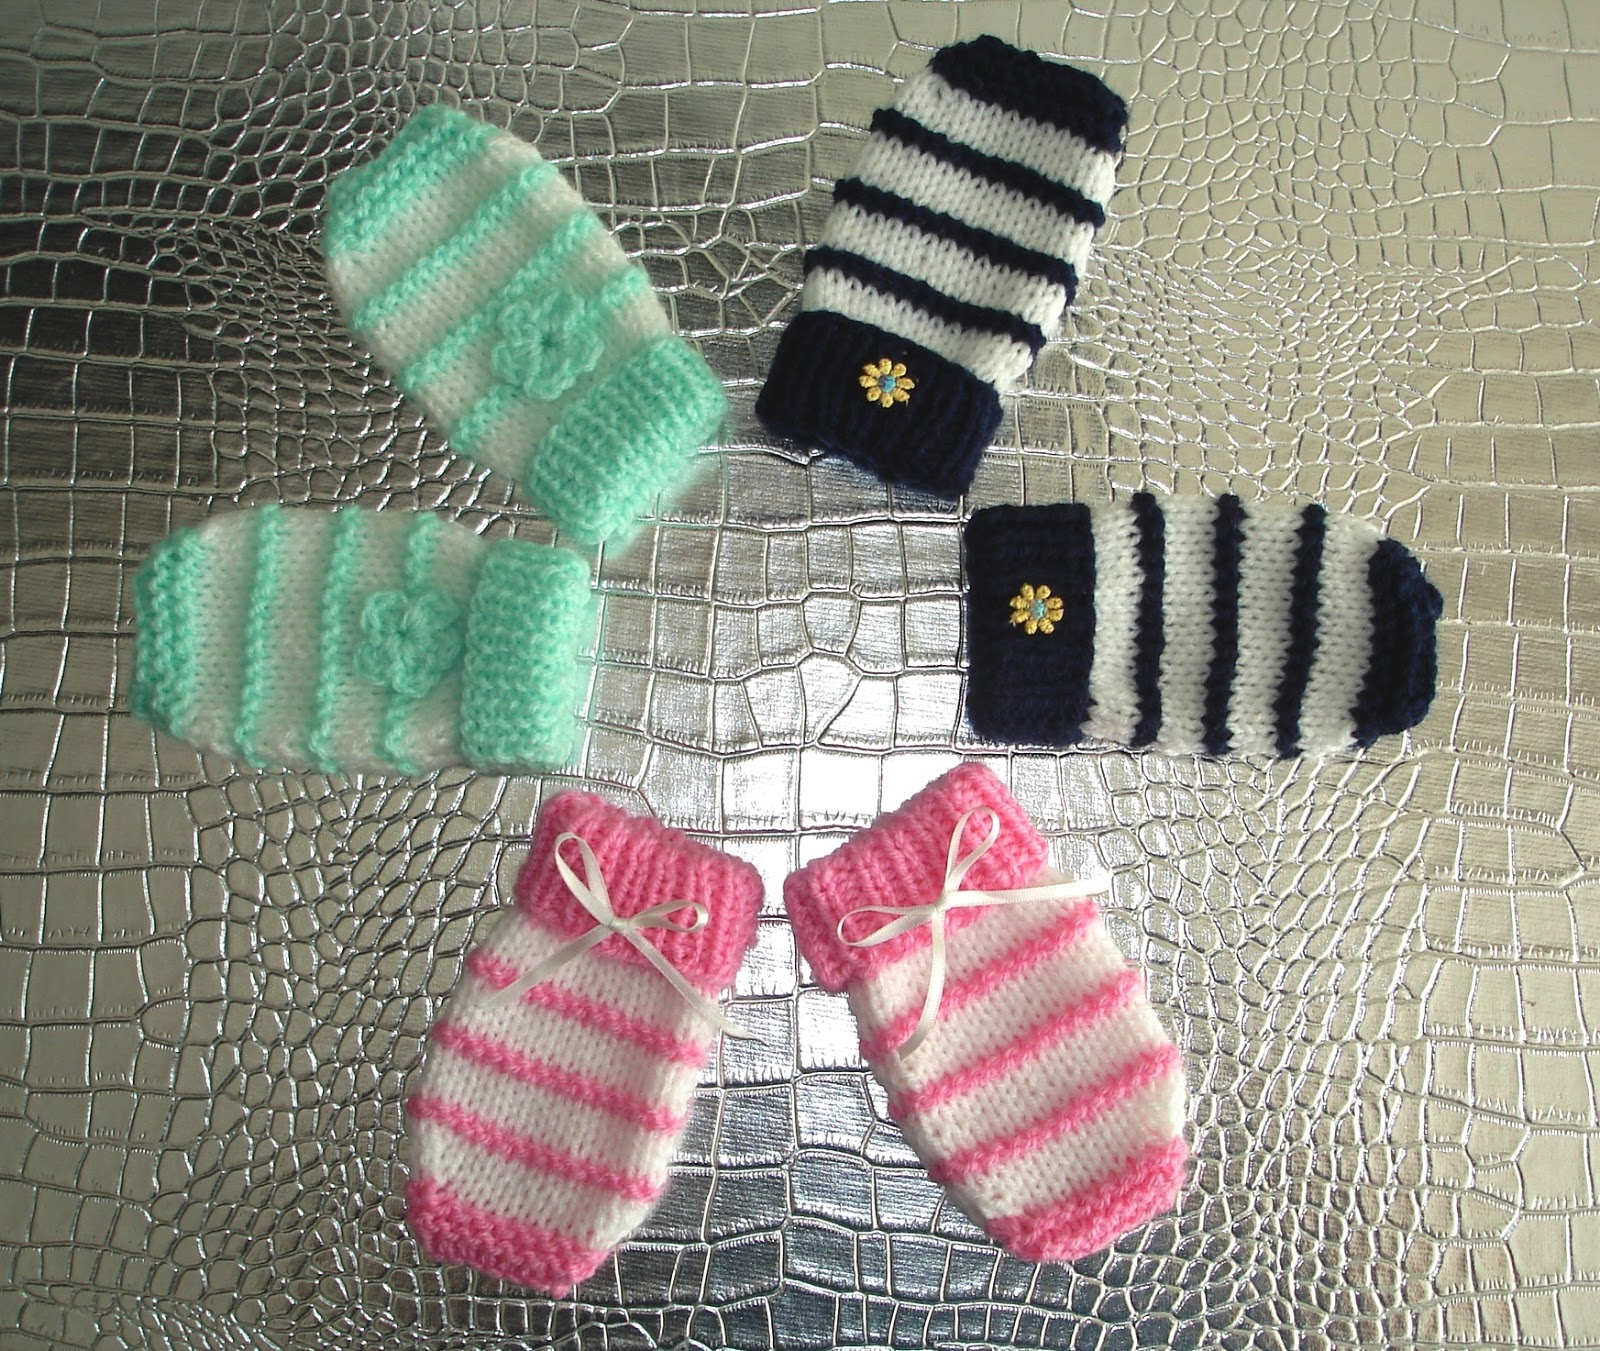 Easy Baby Mittens Knitting Pattern : mariannas lazy daisy days: Garter Stitch Ridge Baby Mittens